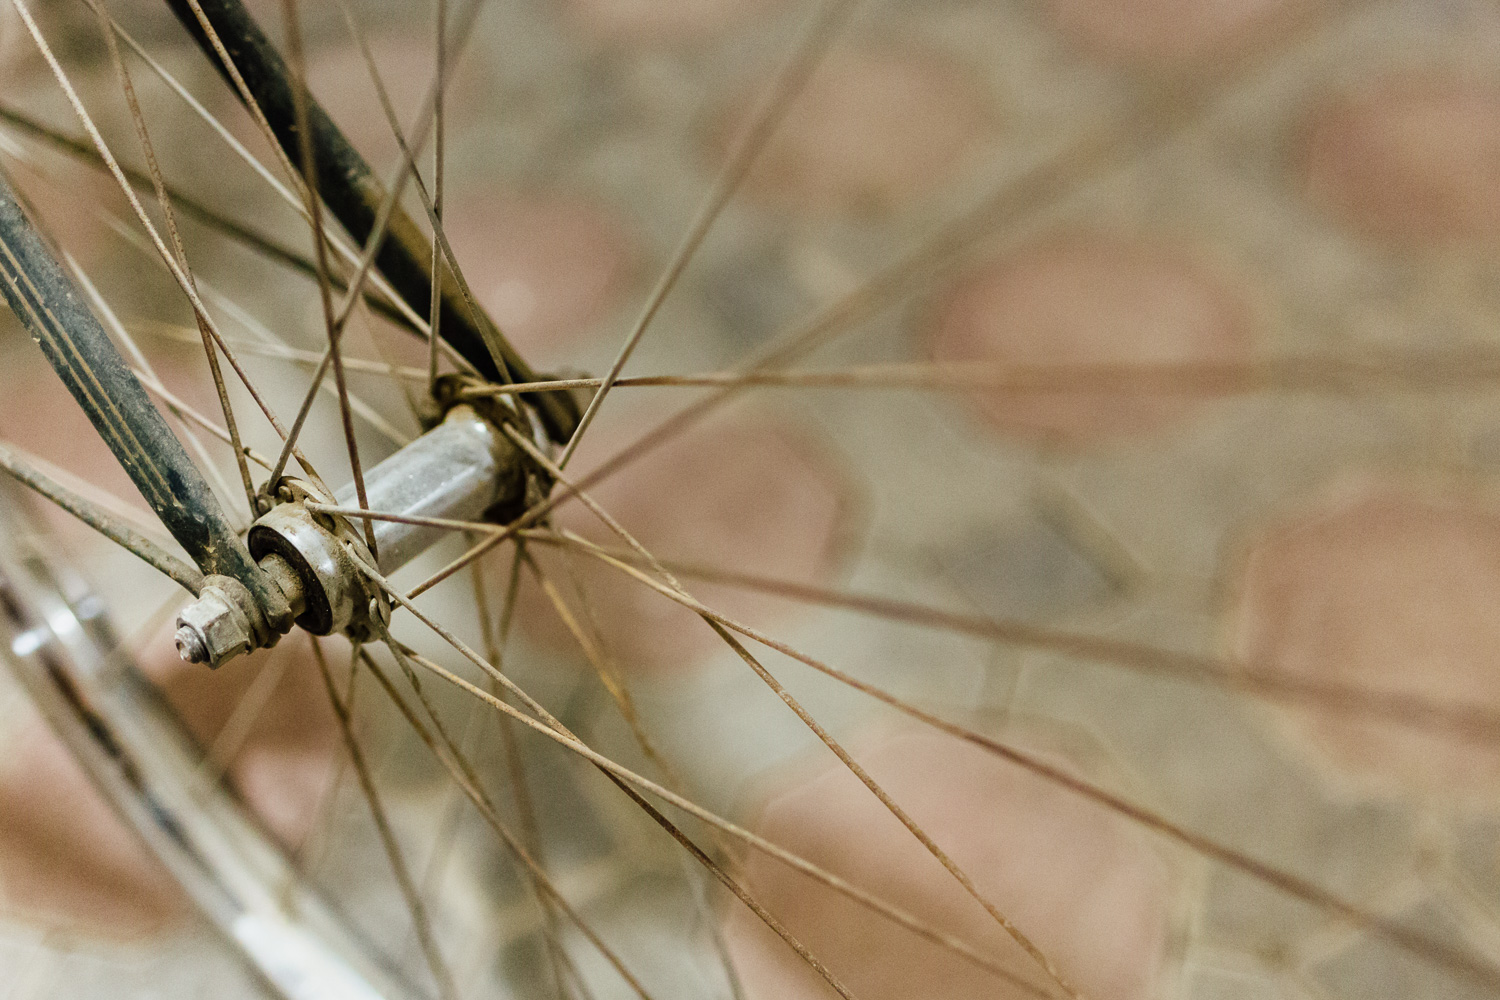 Bicycle-Spokes-Durazo-Photography-Project-Travel-Street.jpg